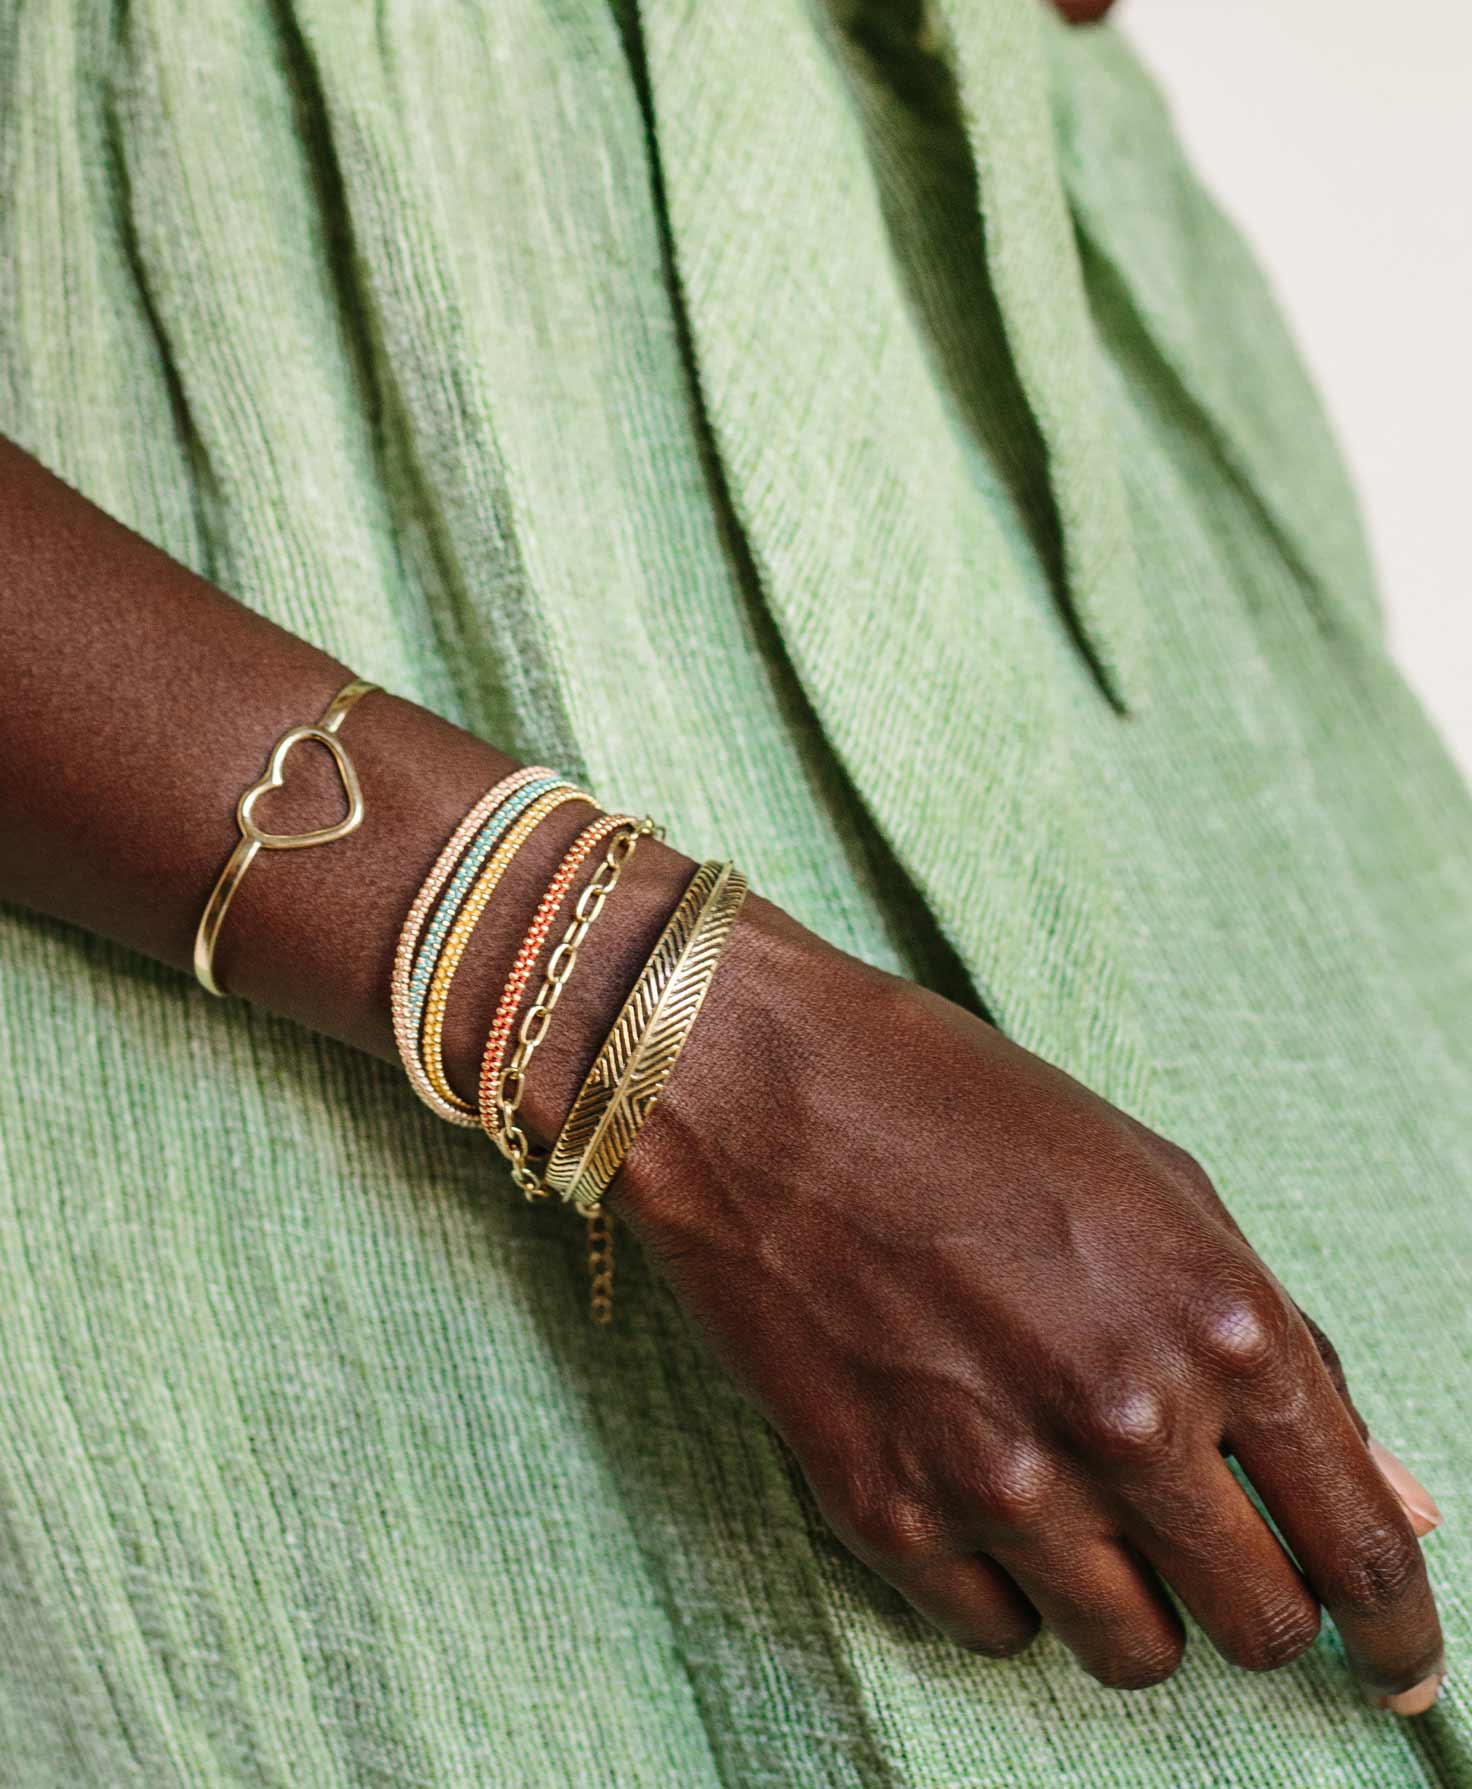 A model's arm is shown resting against her side. On her wrist she wears the Infinity Bracelet paired with a stack of other bracelets, including the Color Blocked Wrap Bracelet, Apex Cuff, and Expression Cuff.